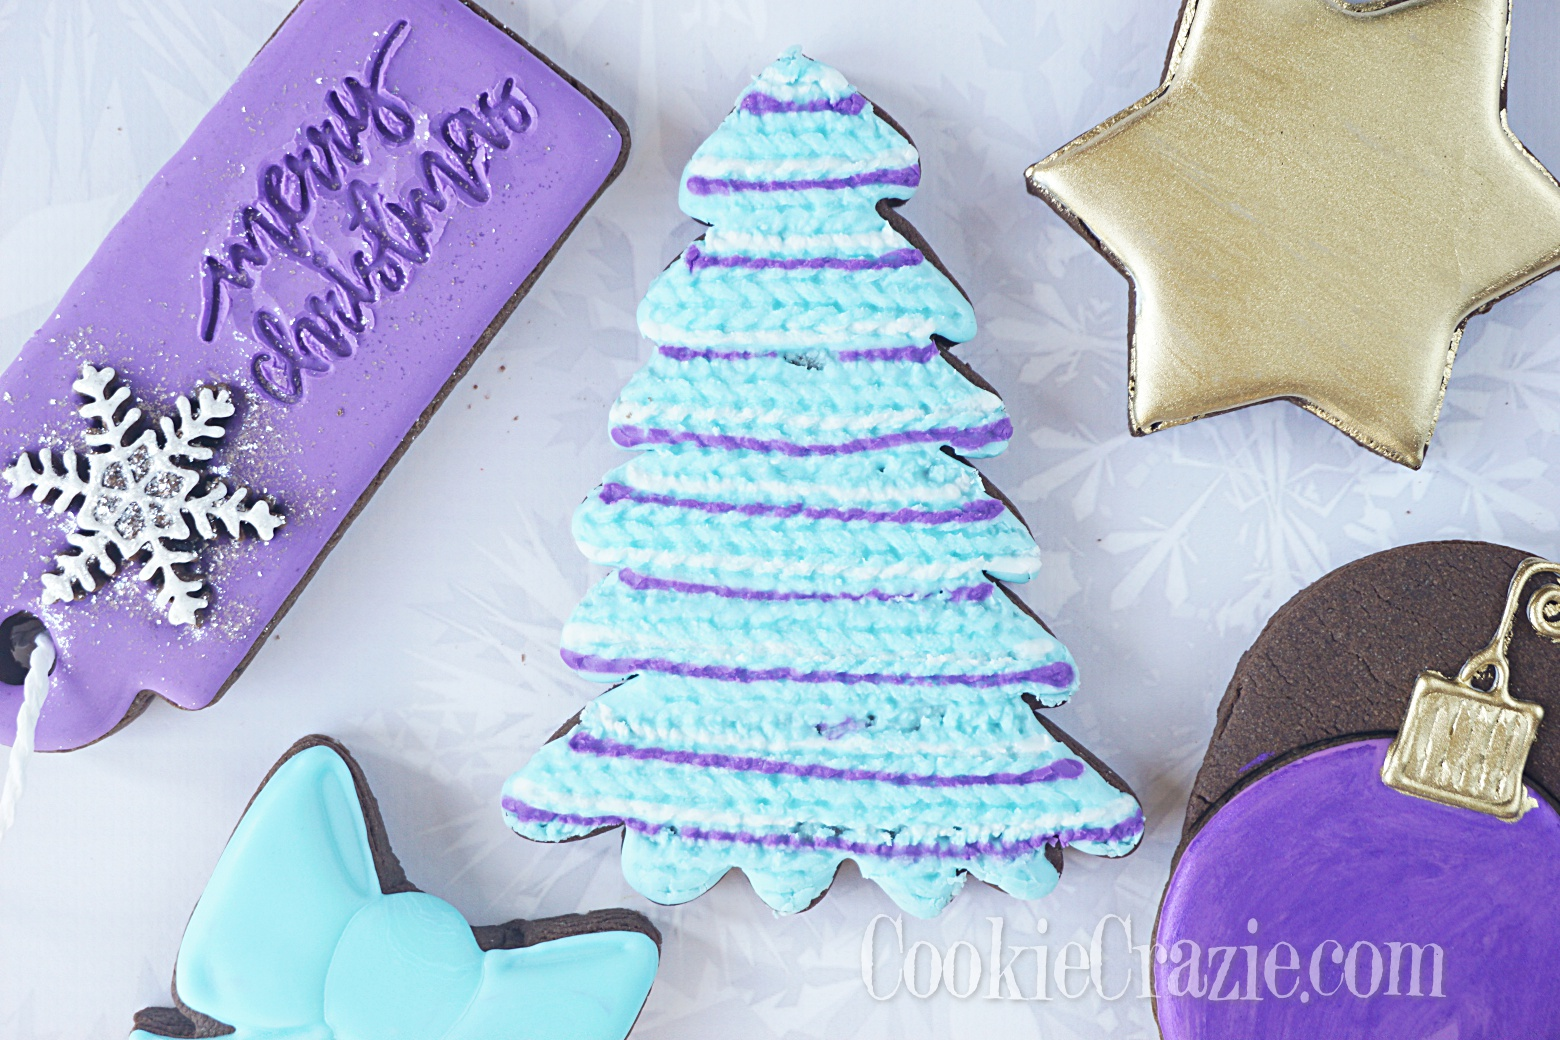 Knitted Christmas Tree Decorated Sugar Cookie YouTube video  HERE